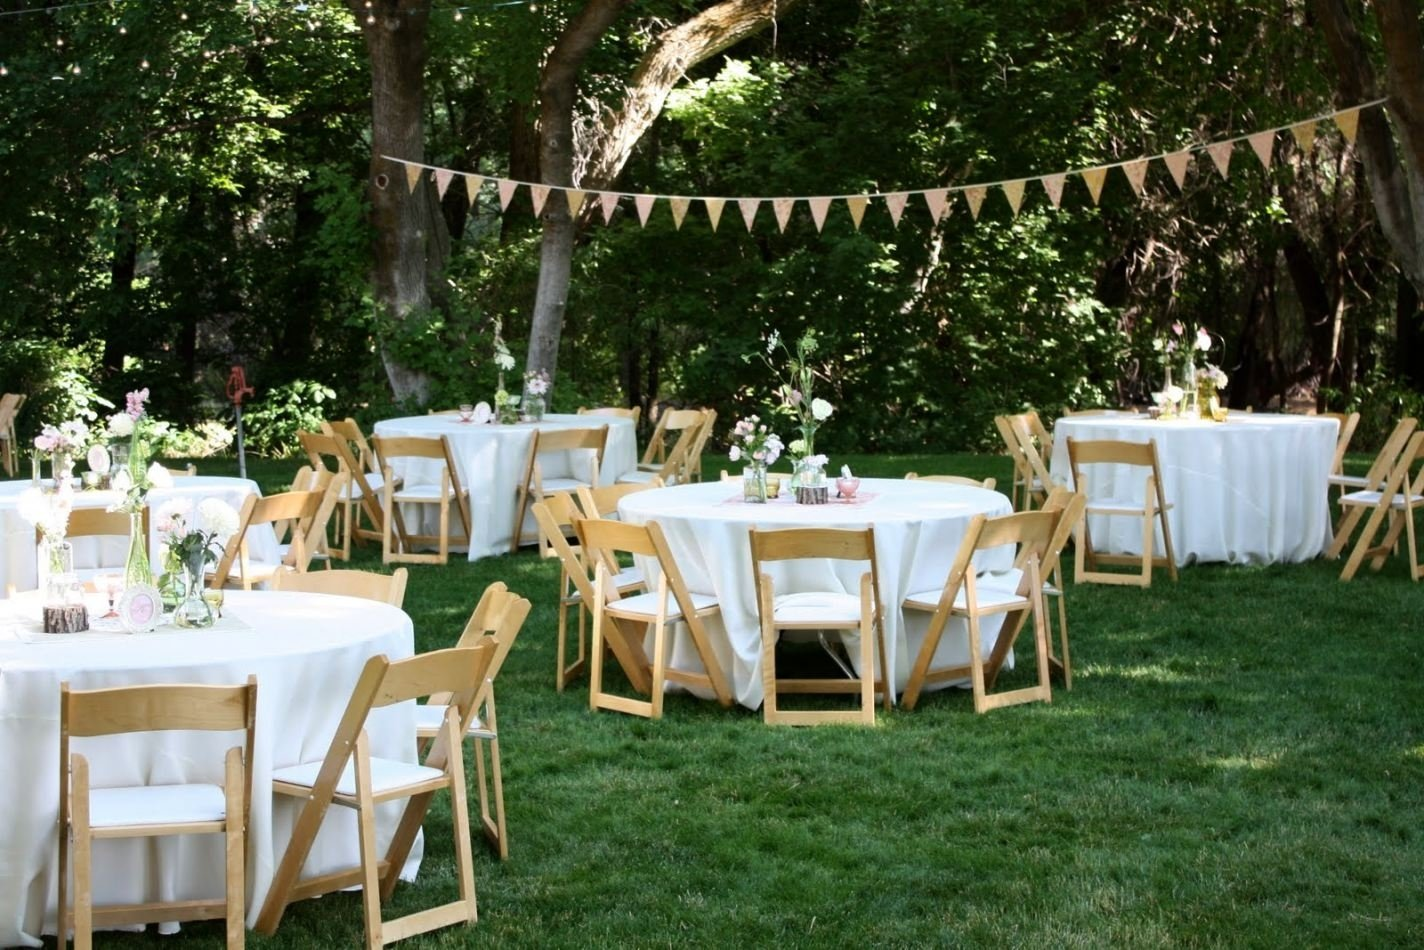 10 Lovable Reception Ideas For Small Wedding small outdoor wedding reception ideas 5 stunning outdoor small 2020